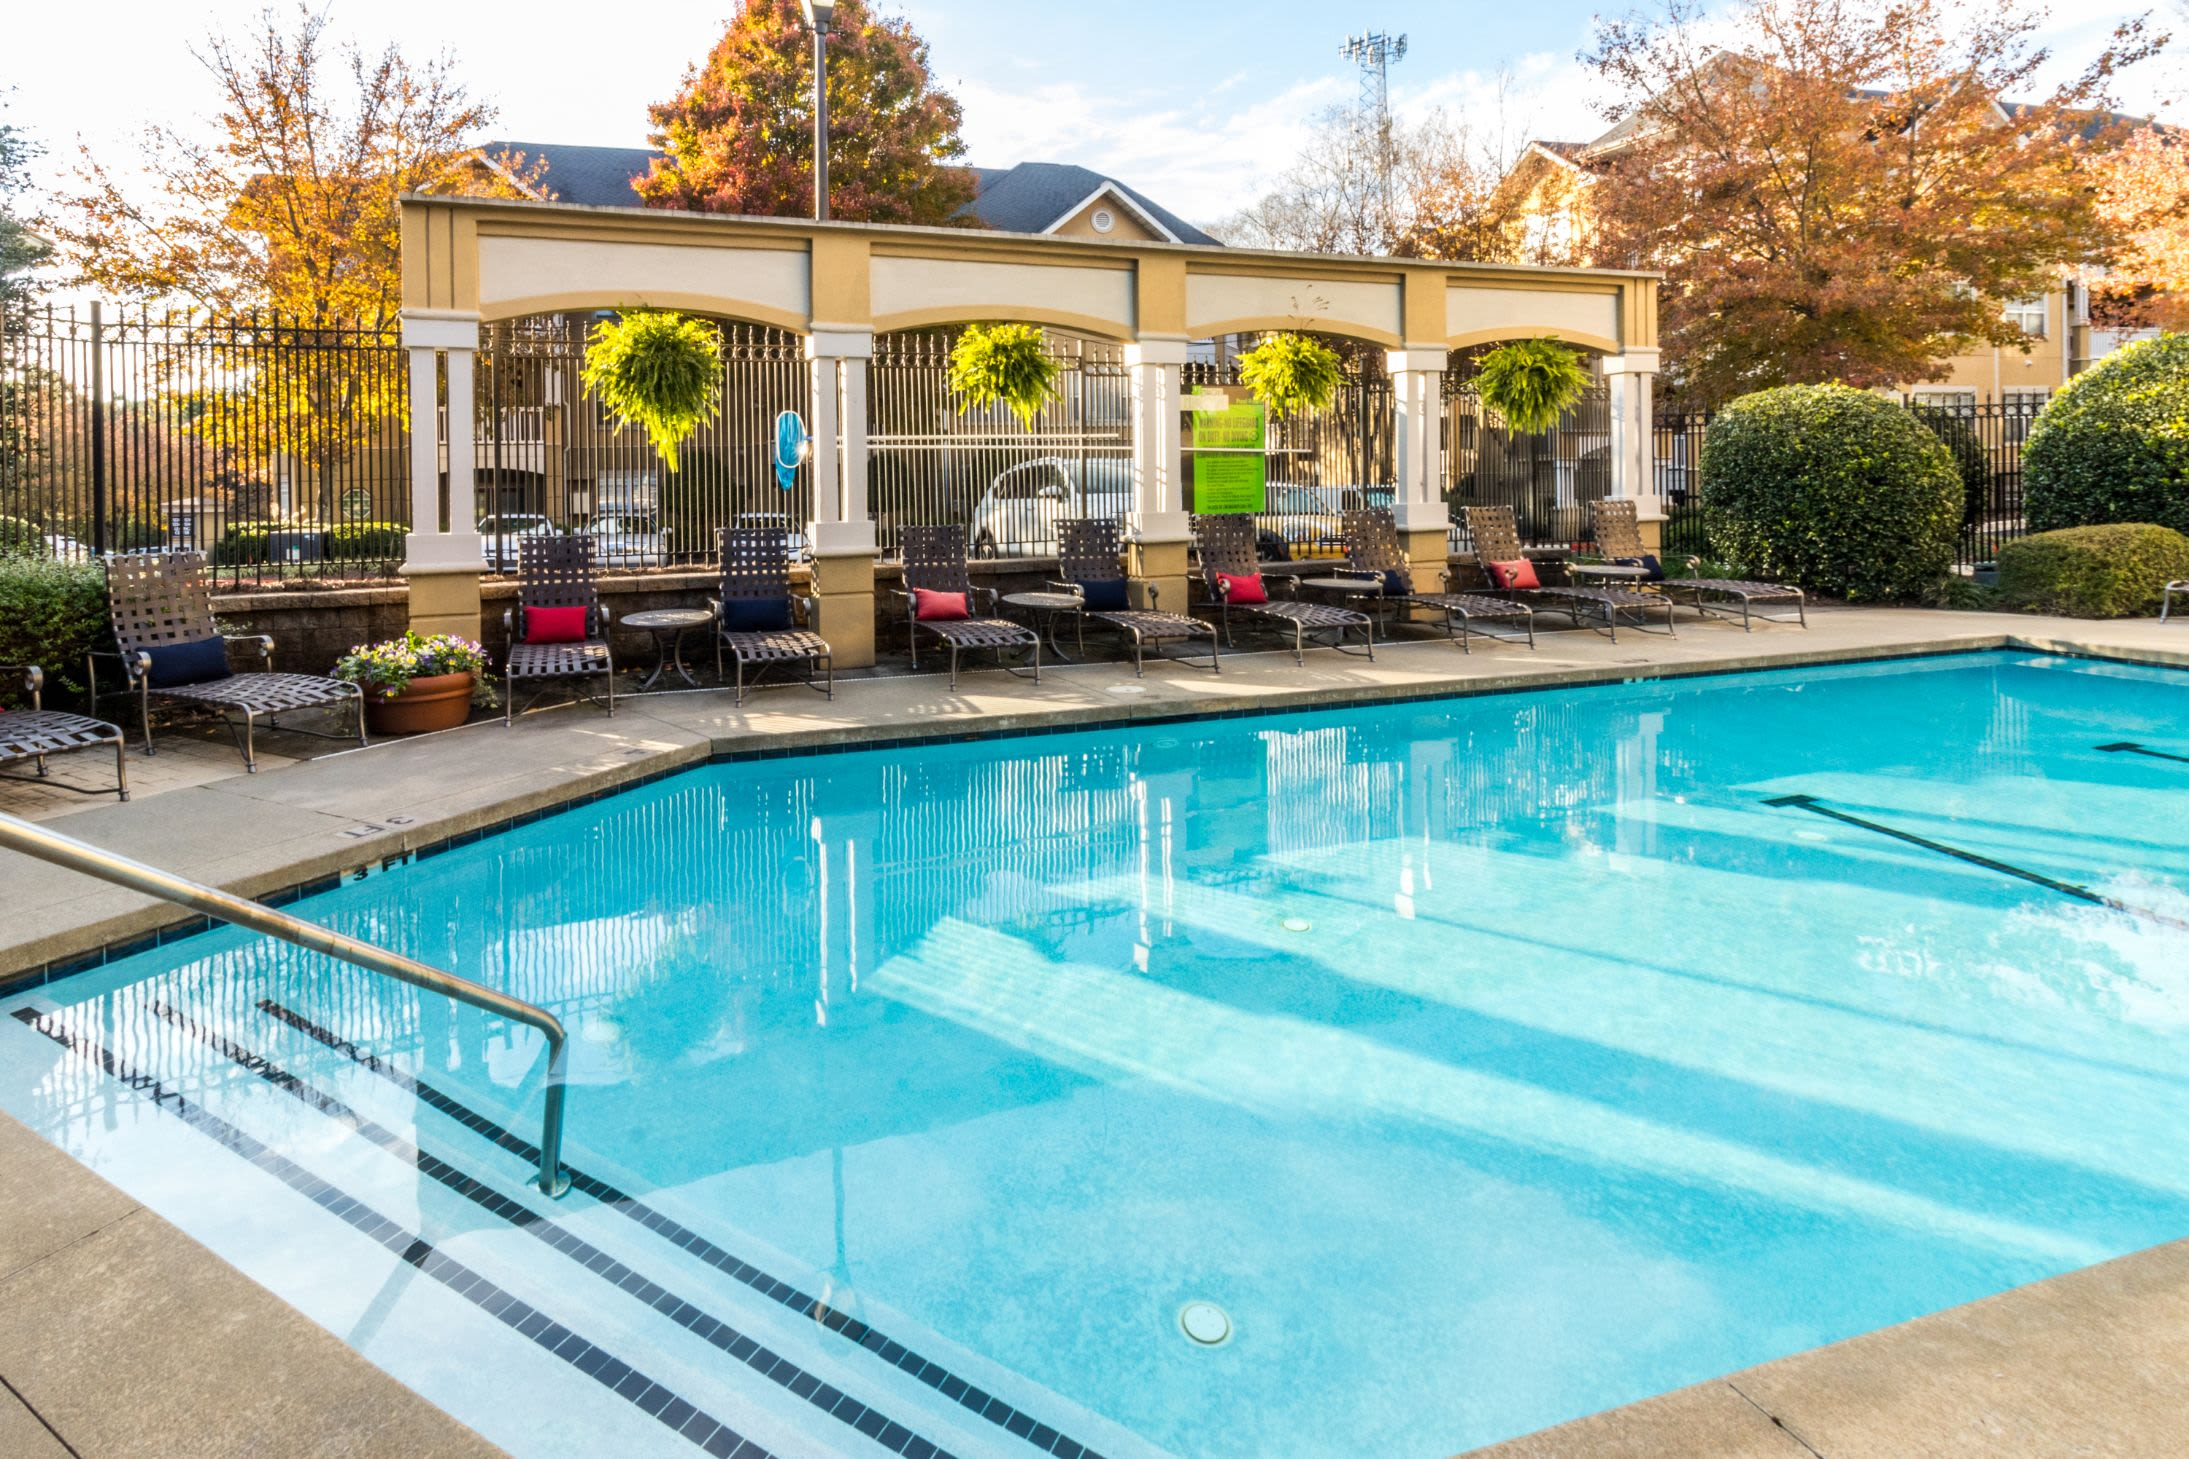 Community pool with sun chairs on deck at Marquis Midtown West in Atlanta, Georgia